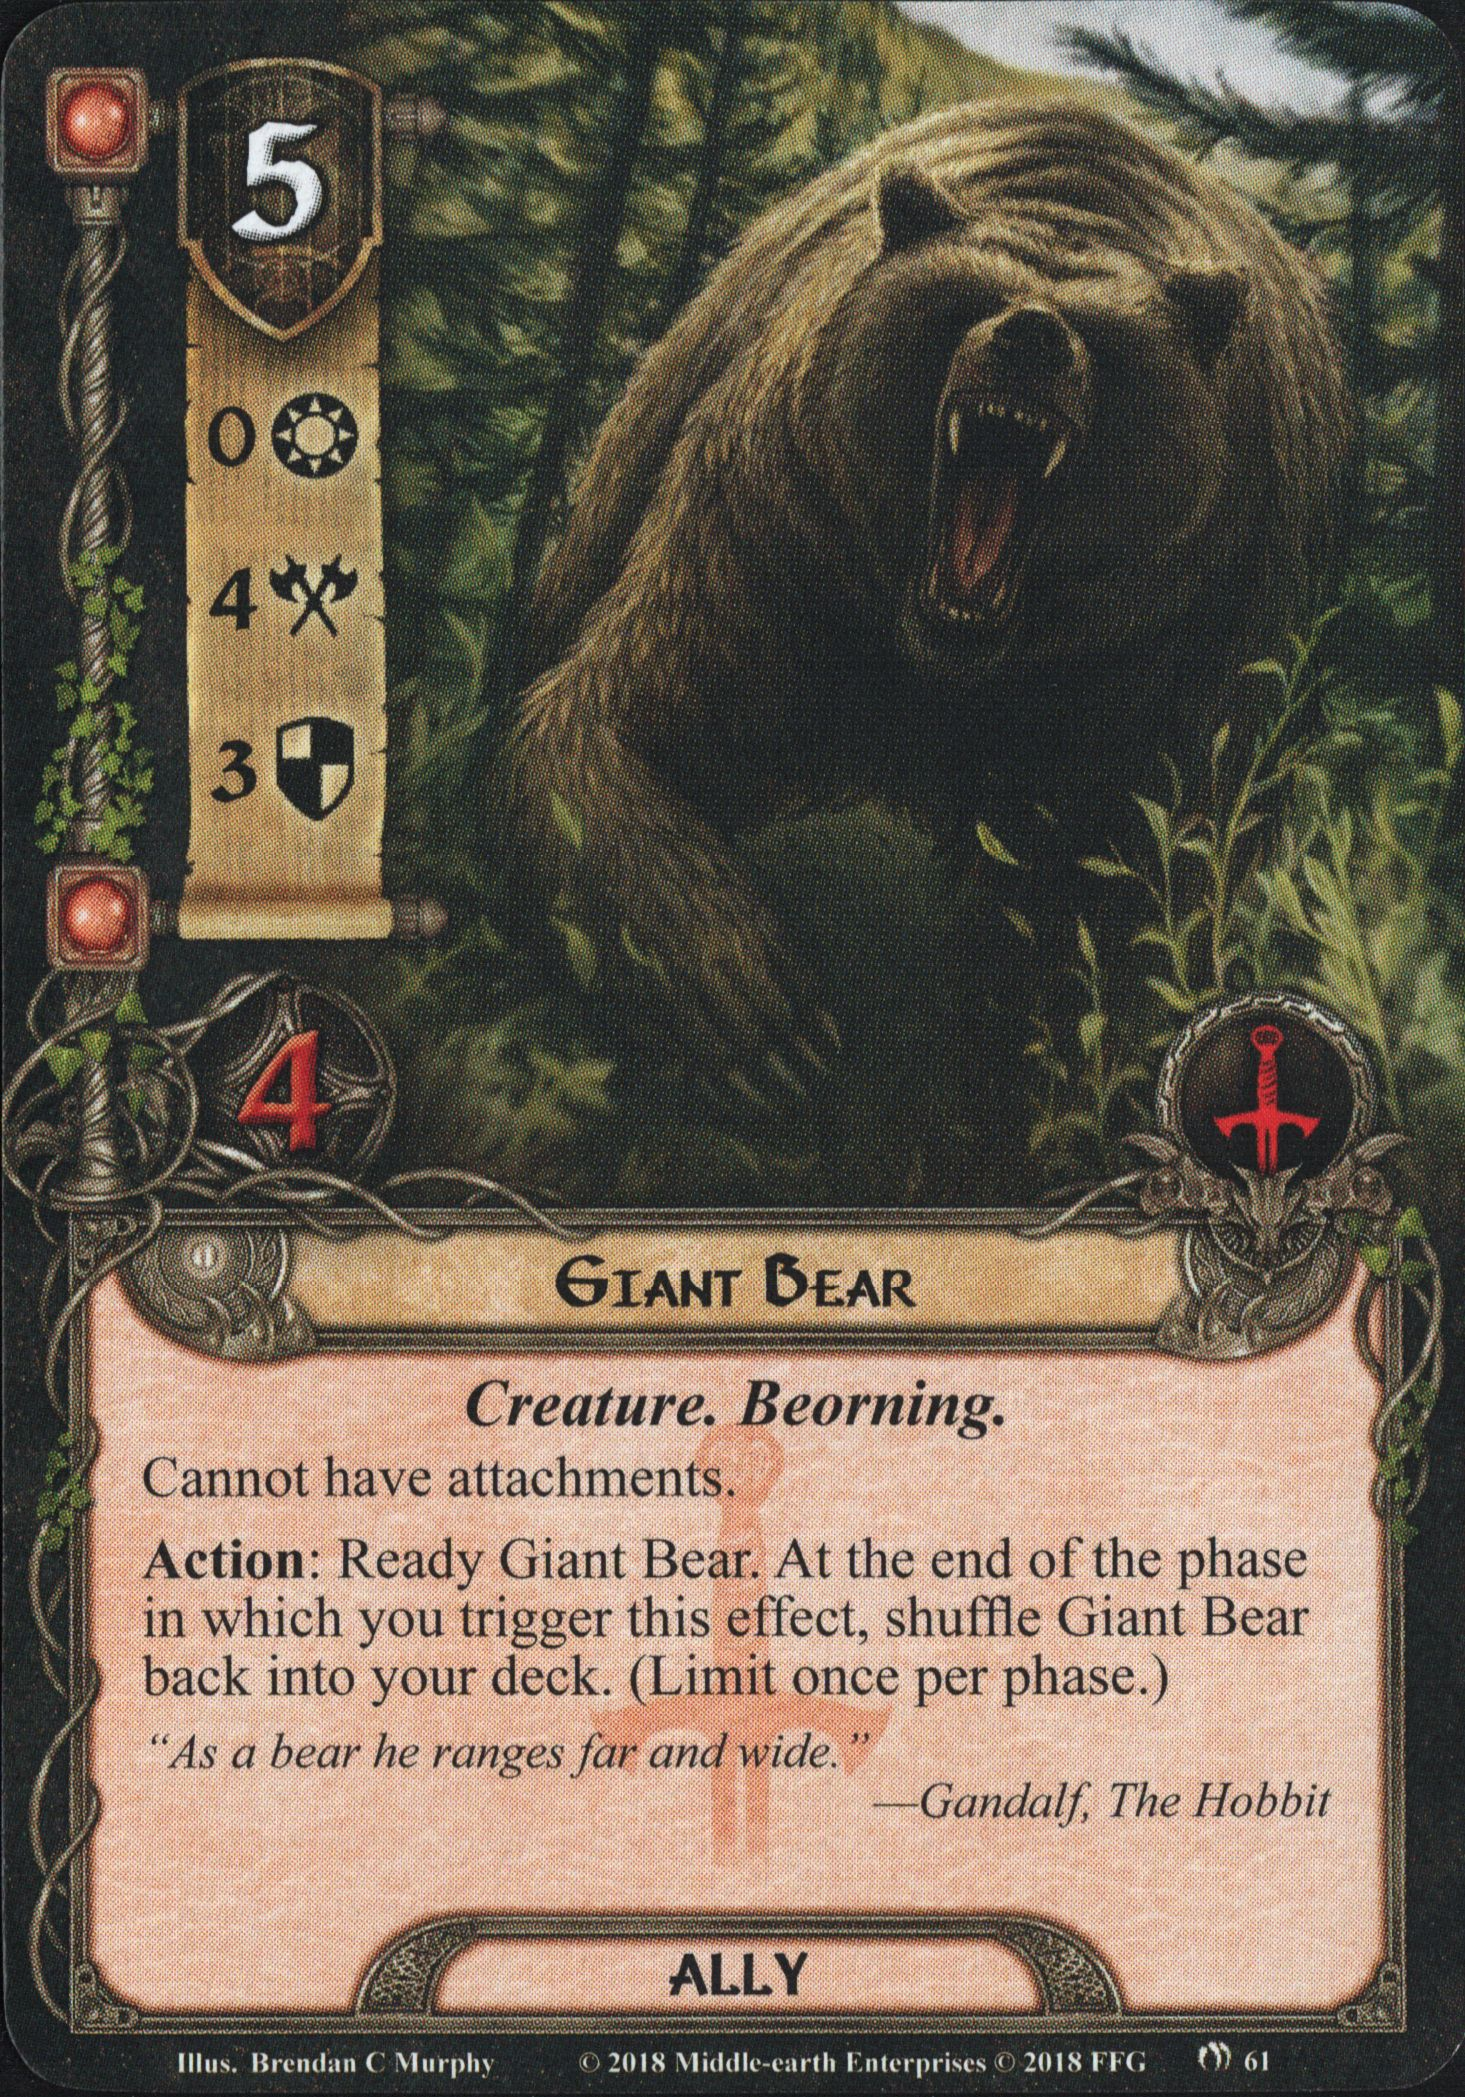 Fire in the night [Ered Mithrin pack 3] Giant-Bear